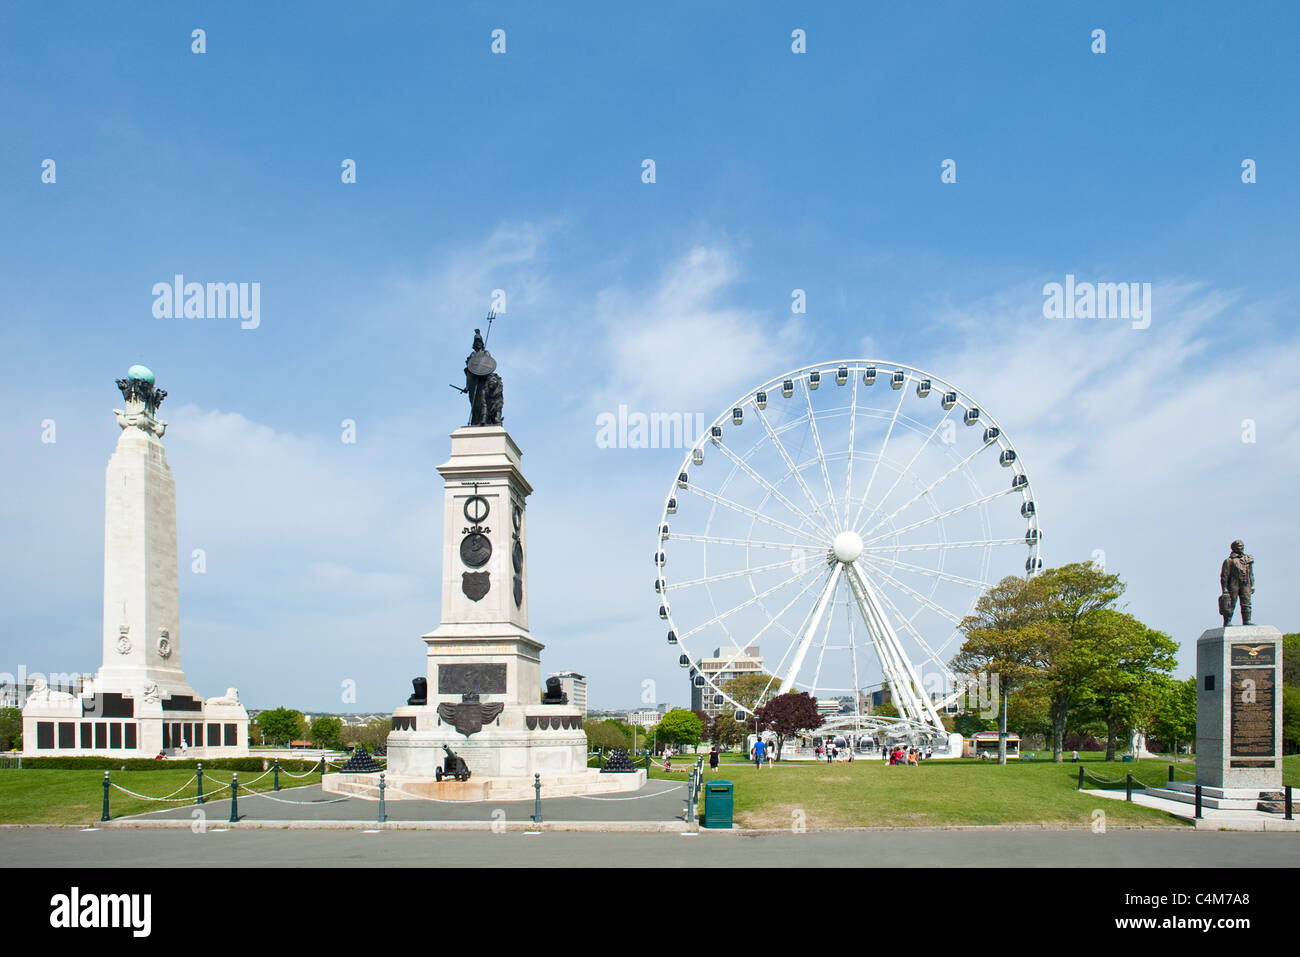 War memorials and the ferris wheel situated on Plymouth Hoe. - Stock Image